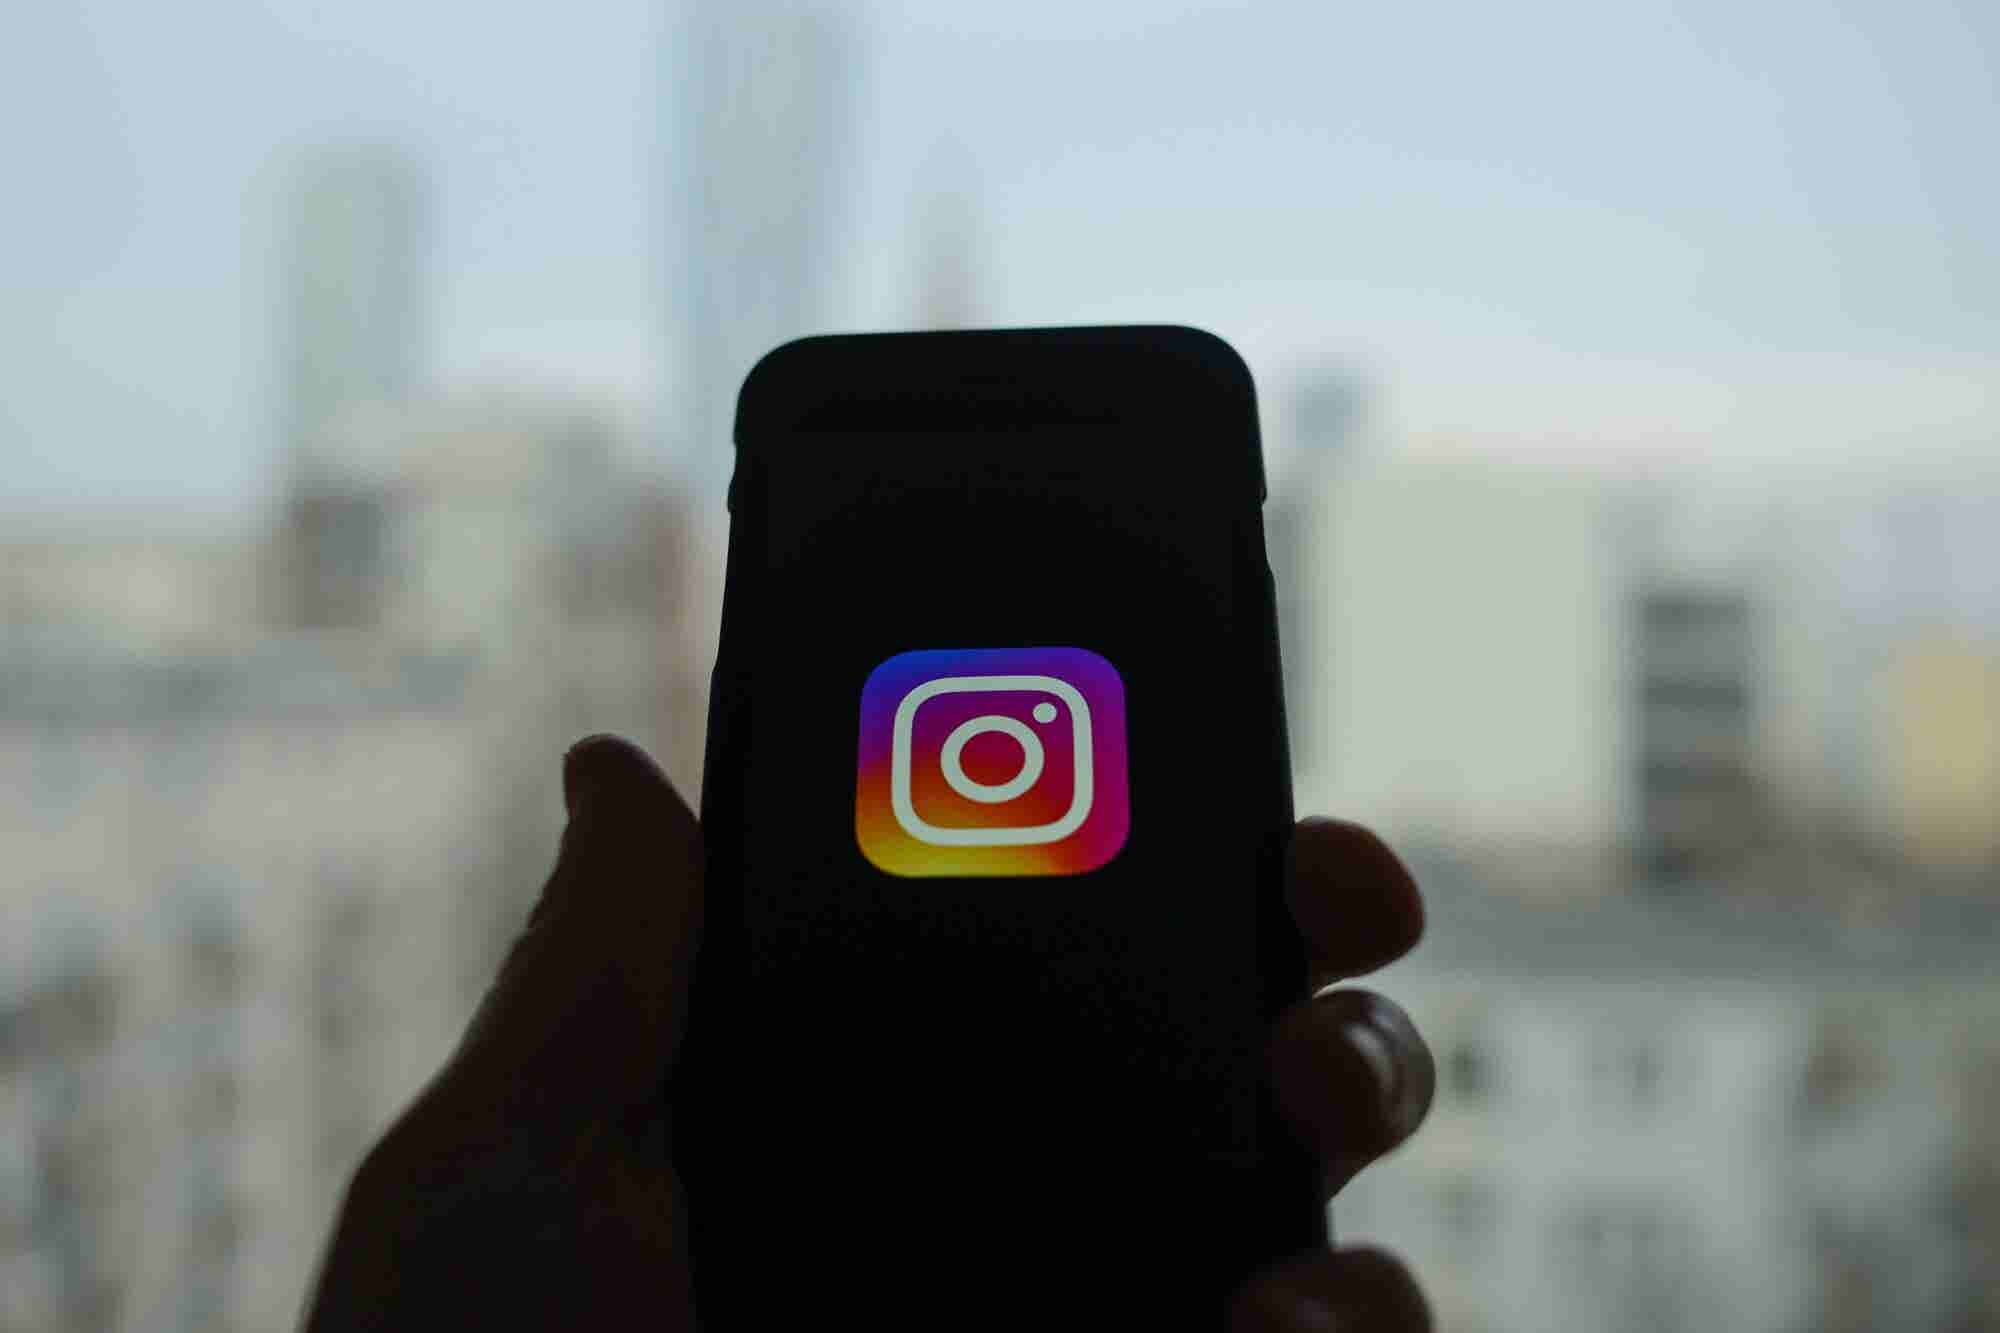 10 Instagram Marketing Tools to Help Grow Your Brand on Instagram in 2019